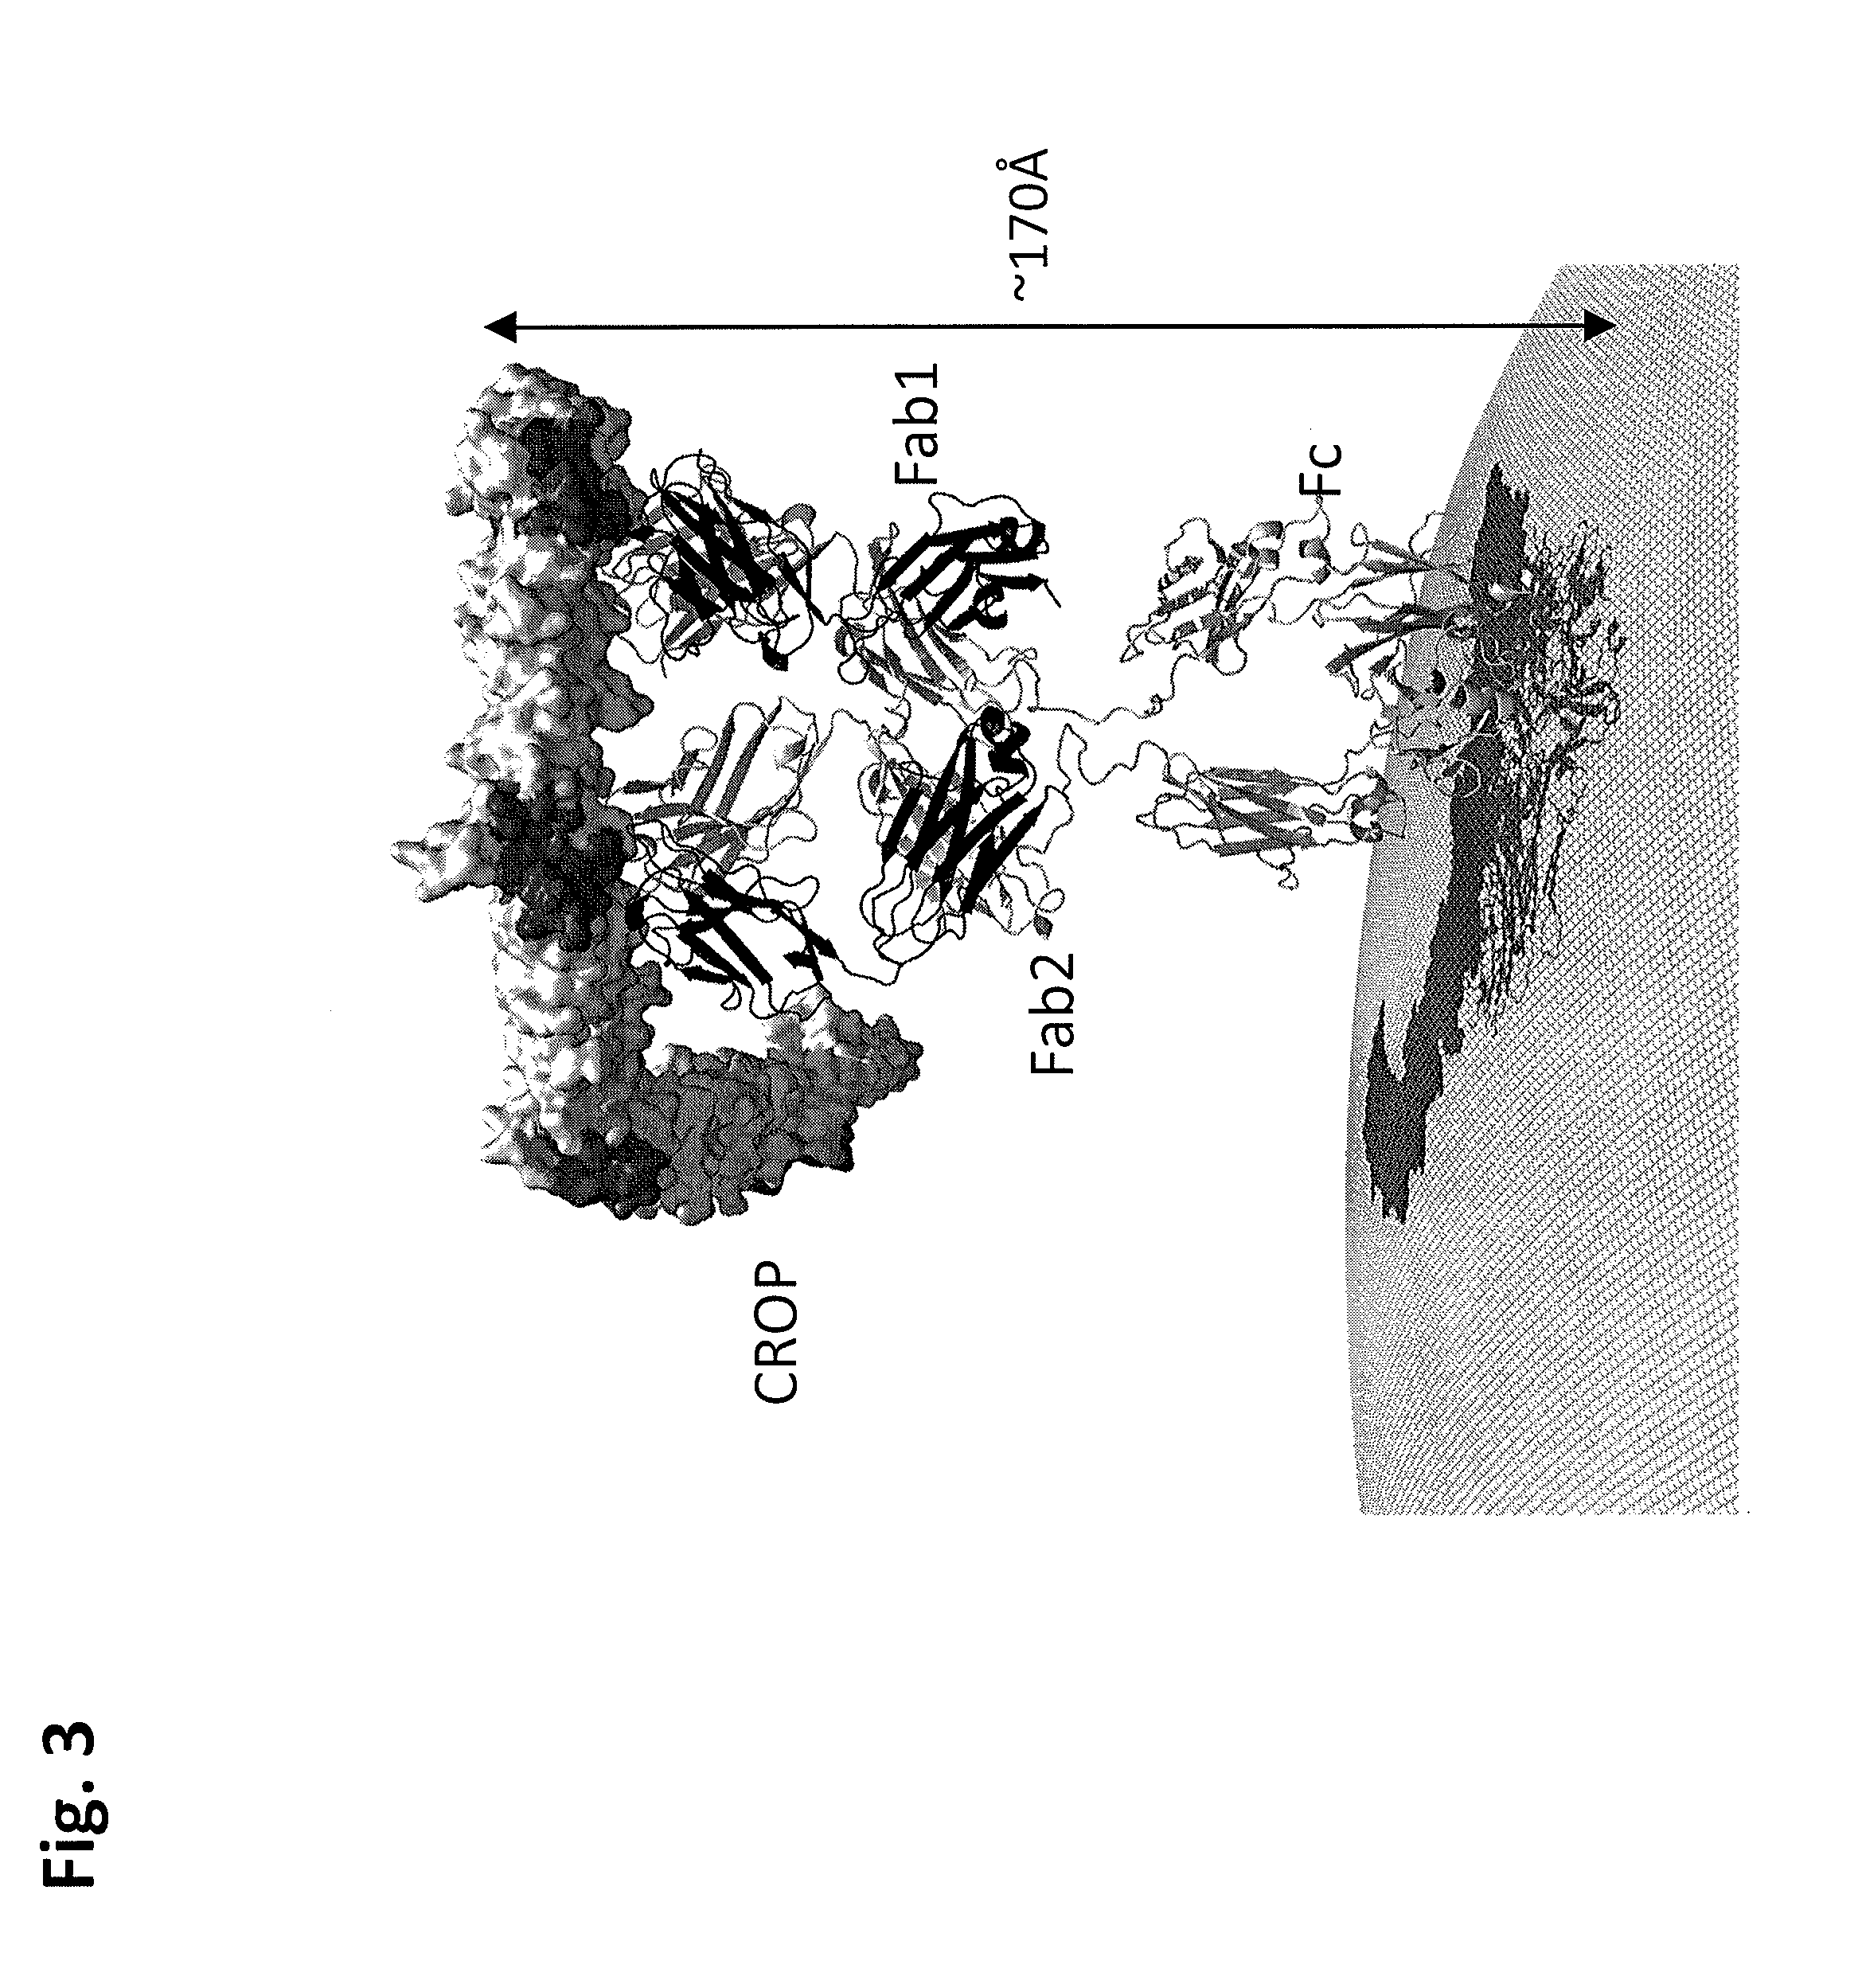 Us9181632b1 C Difficile Toxin B Crop Domain Peptides Antibodies And Complexes Thereof Google Patents